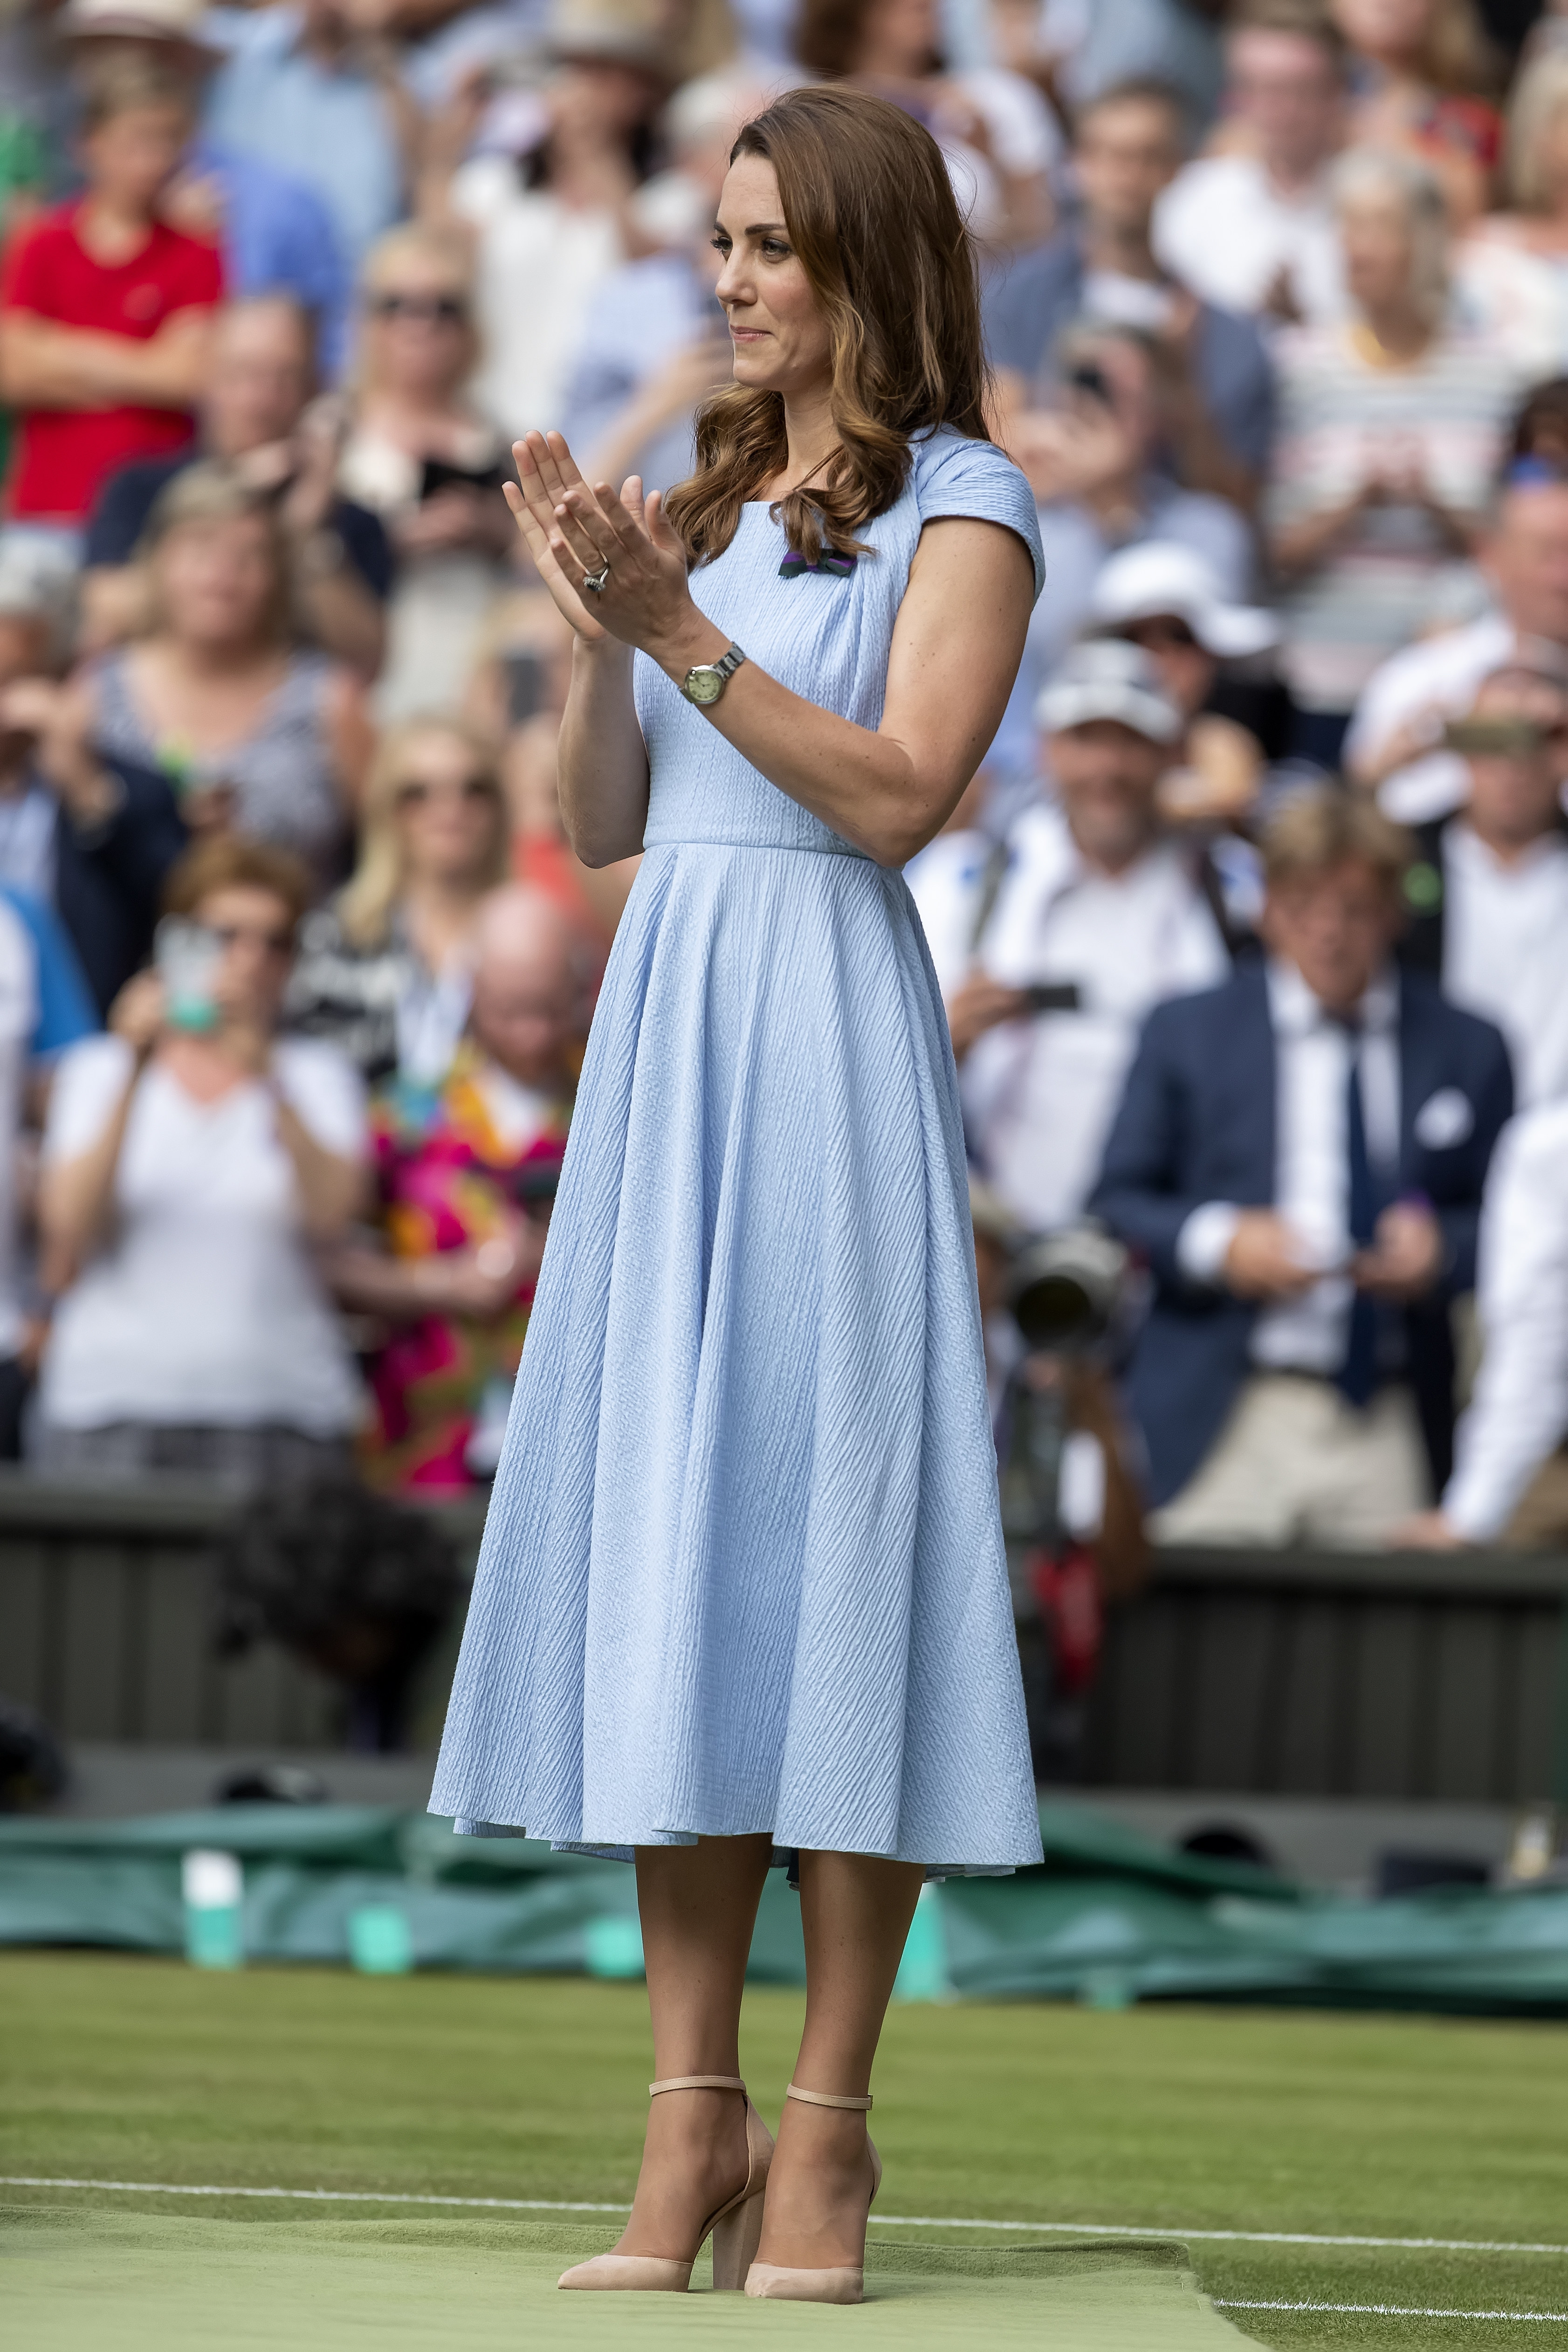 14th July 2019, The All England Lawn Tennis and Croquet Club, Wimbledon, England, Wimbledon Tennis Tournament, Day 13, mens singles final; Catherine Duchess of Cambridge (photo by Shaun Brooks/Action Plus via Getty Images)